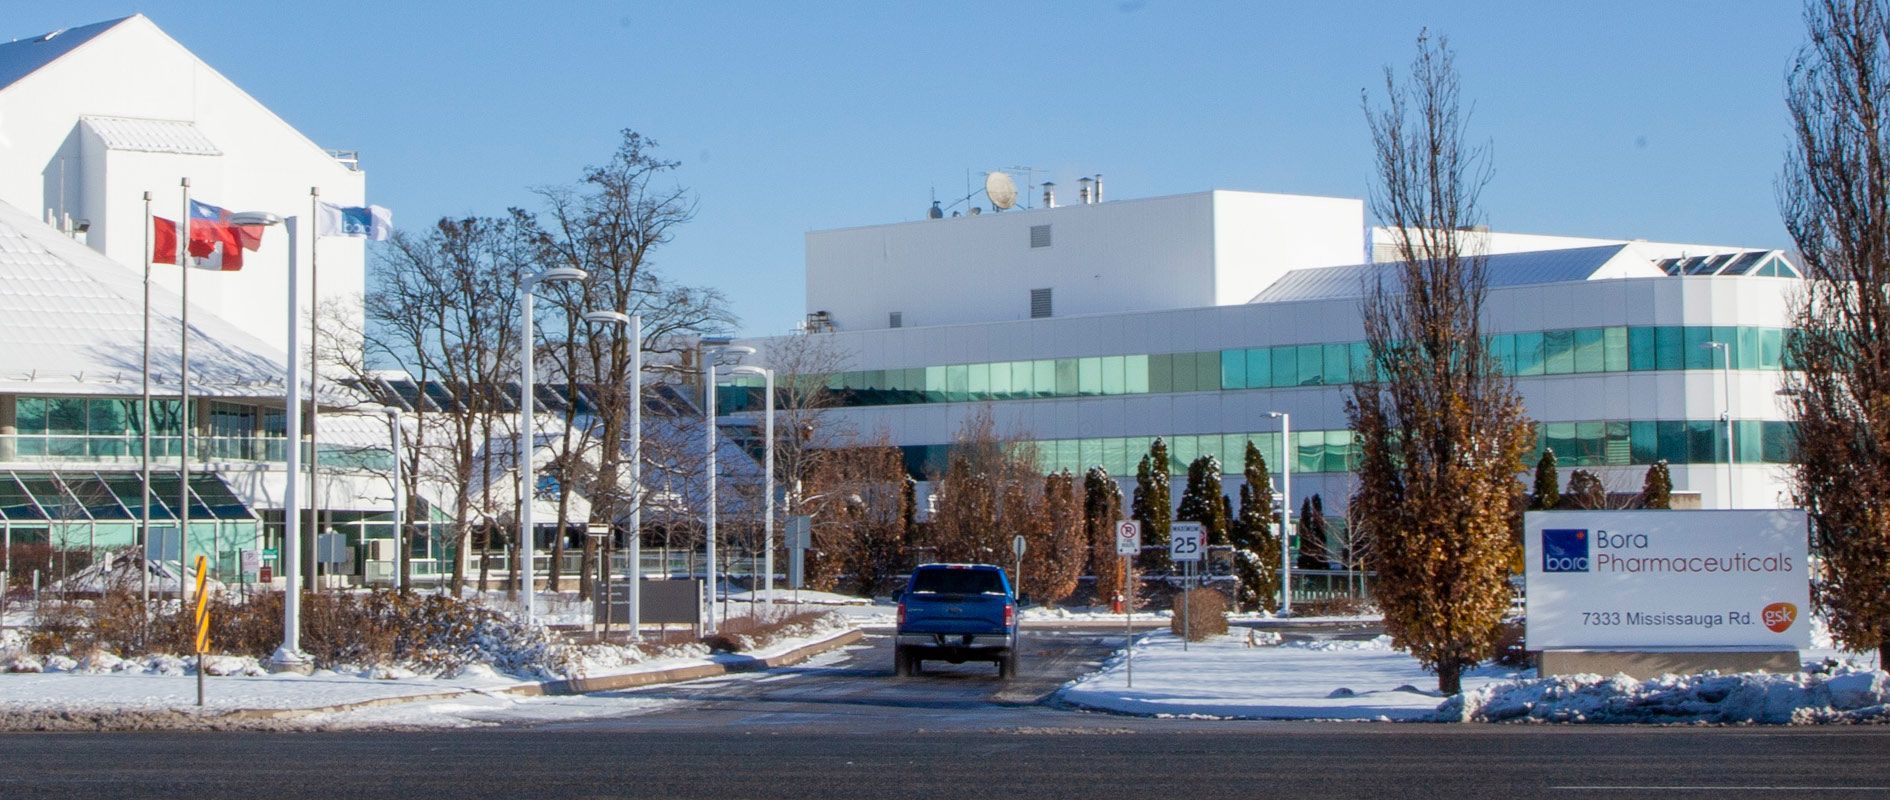 Bora Pharmaceuticals Selects Mississauga for its North American Headquarters